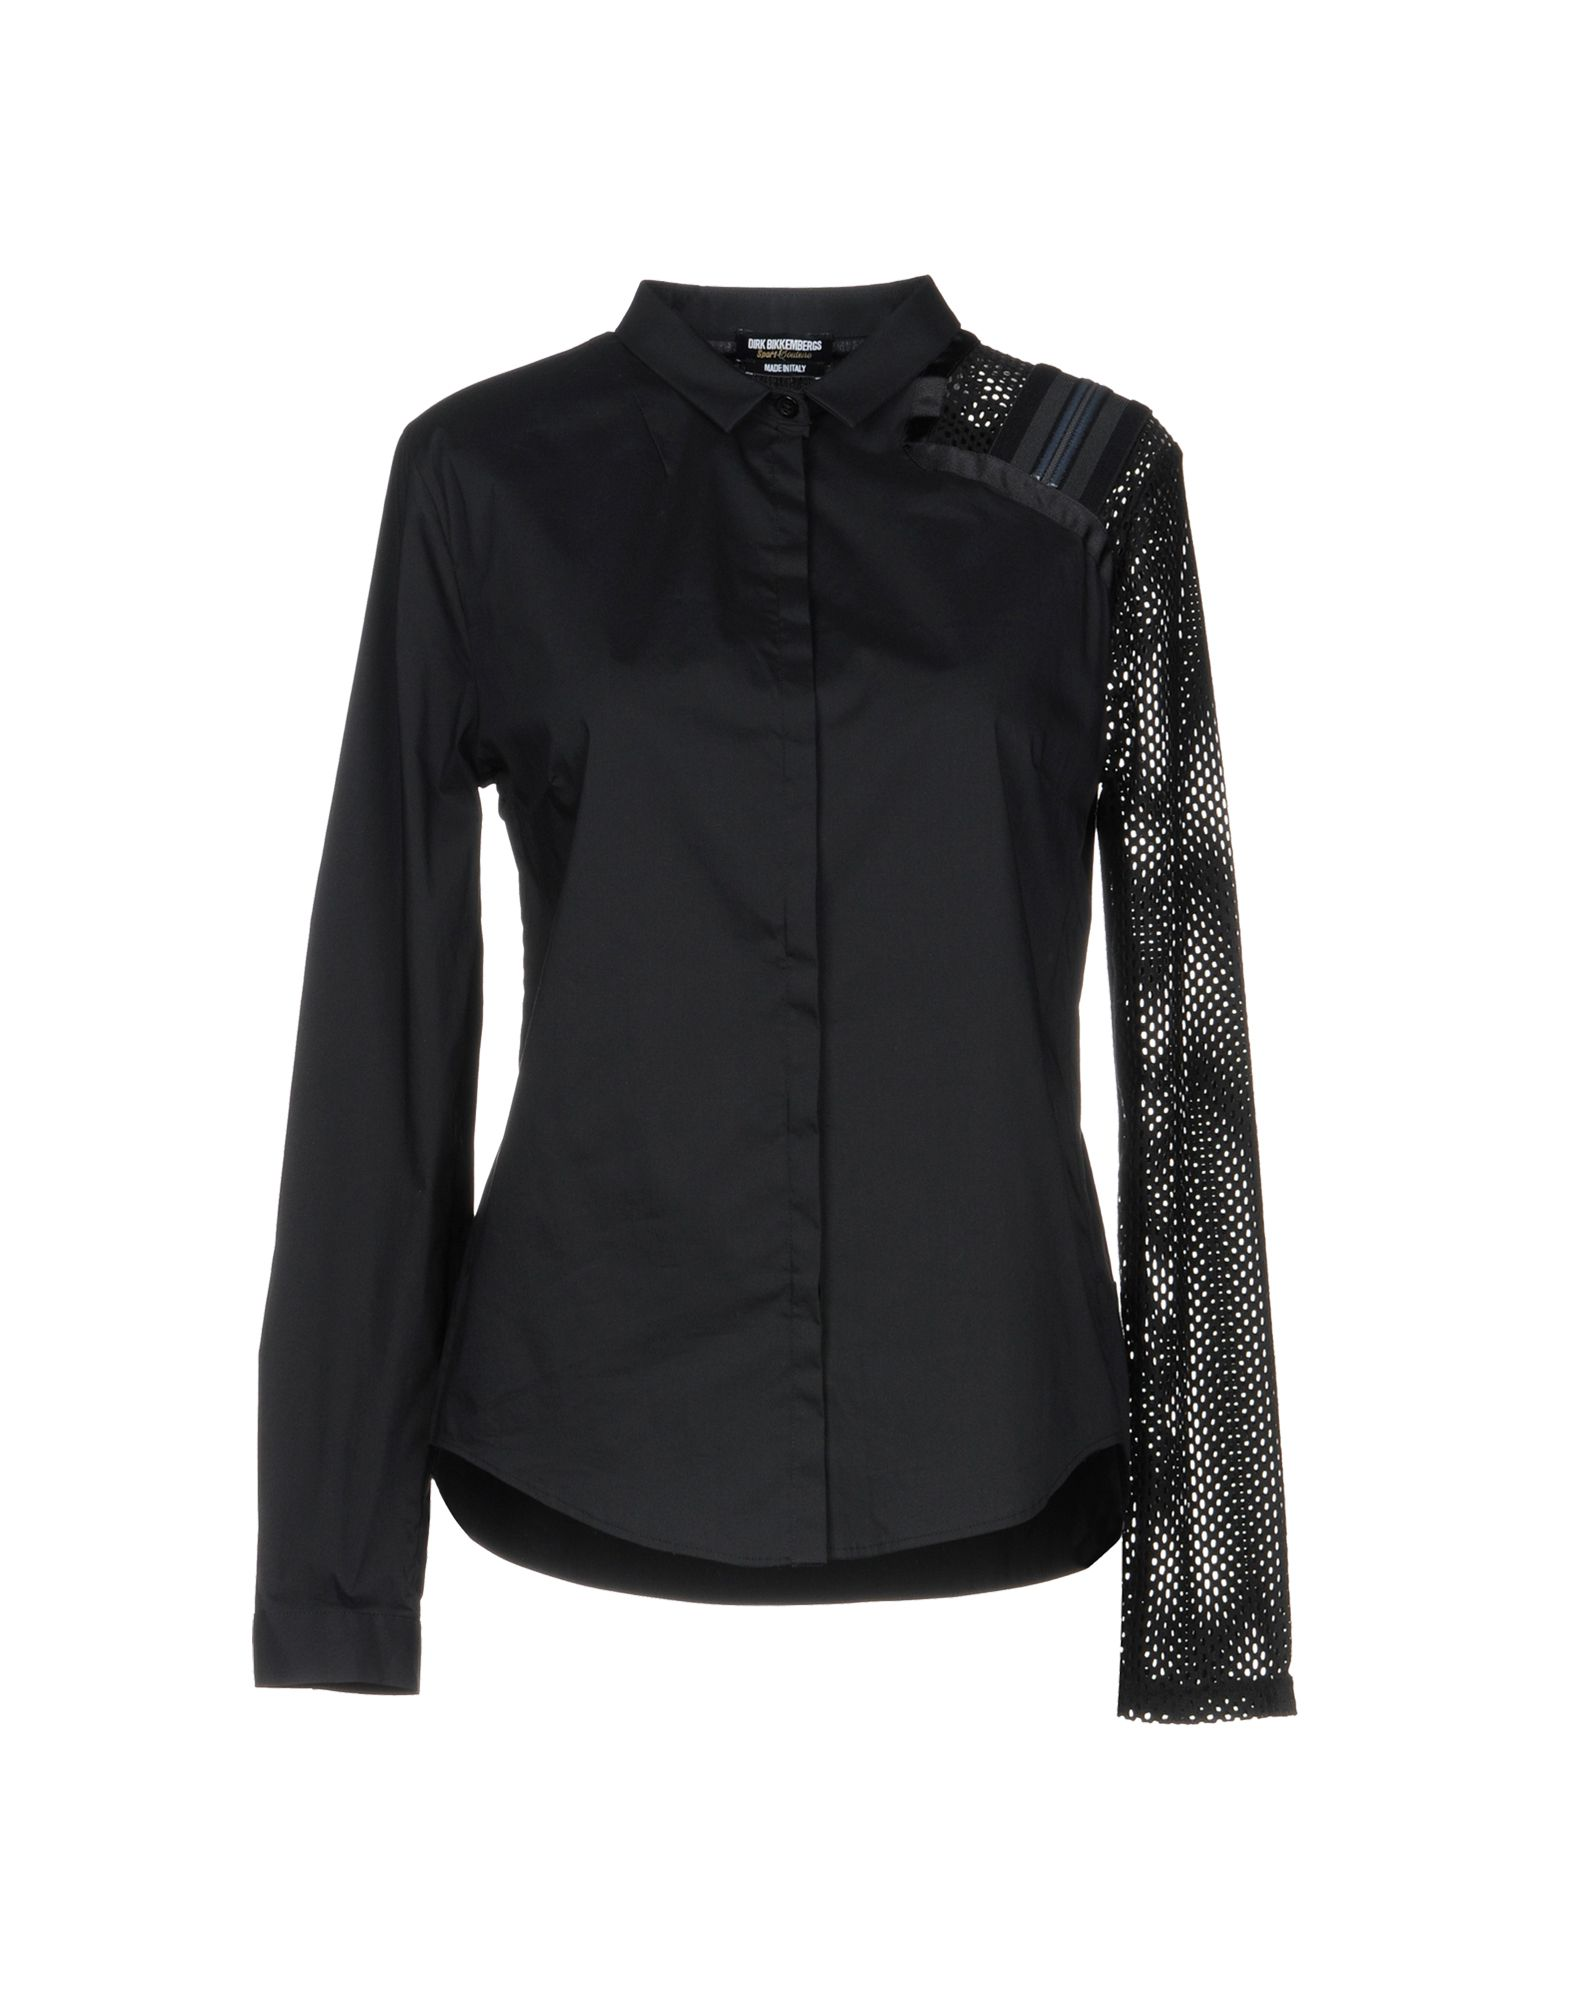 DIRK BIKKEMBERGS SPORT COUTURE Pубашка dirk bikkembergs sport couture пиджак